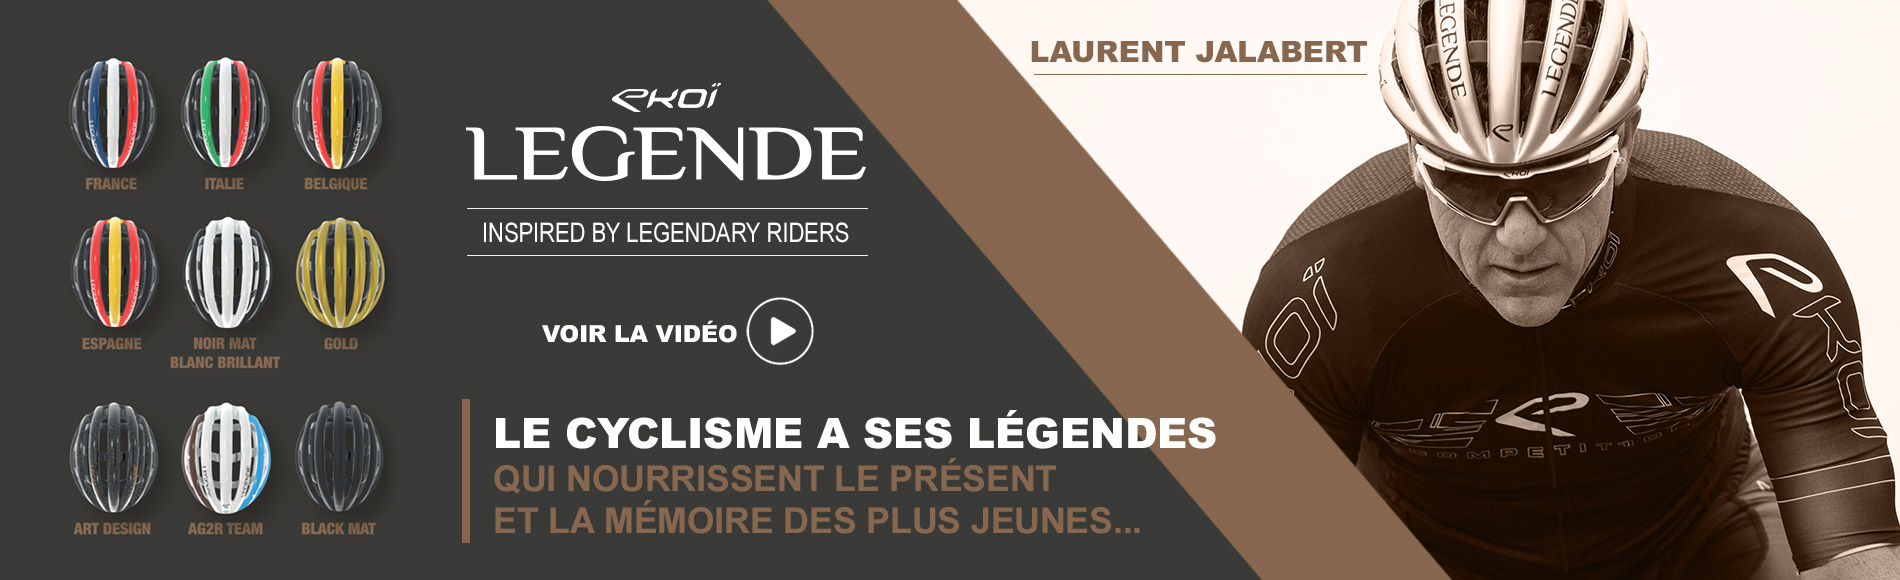 Caque EKOI LEGENDE Laurent Jalabert